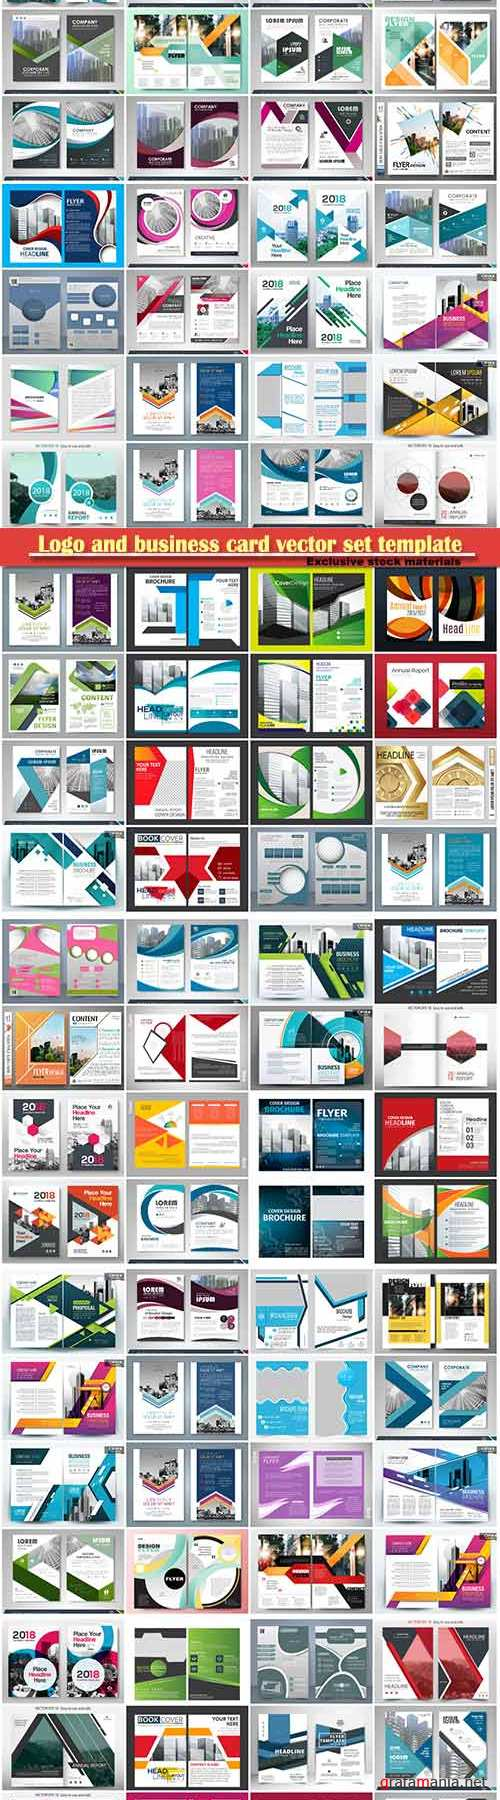 Logo and business card vector set template # 24